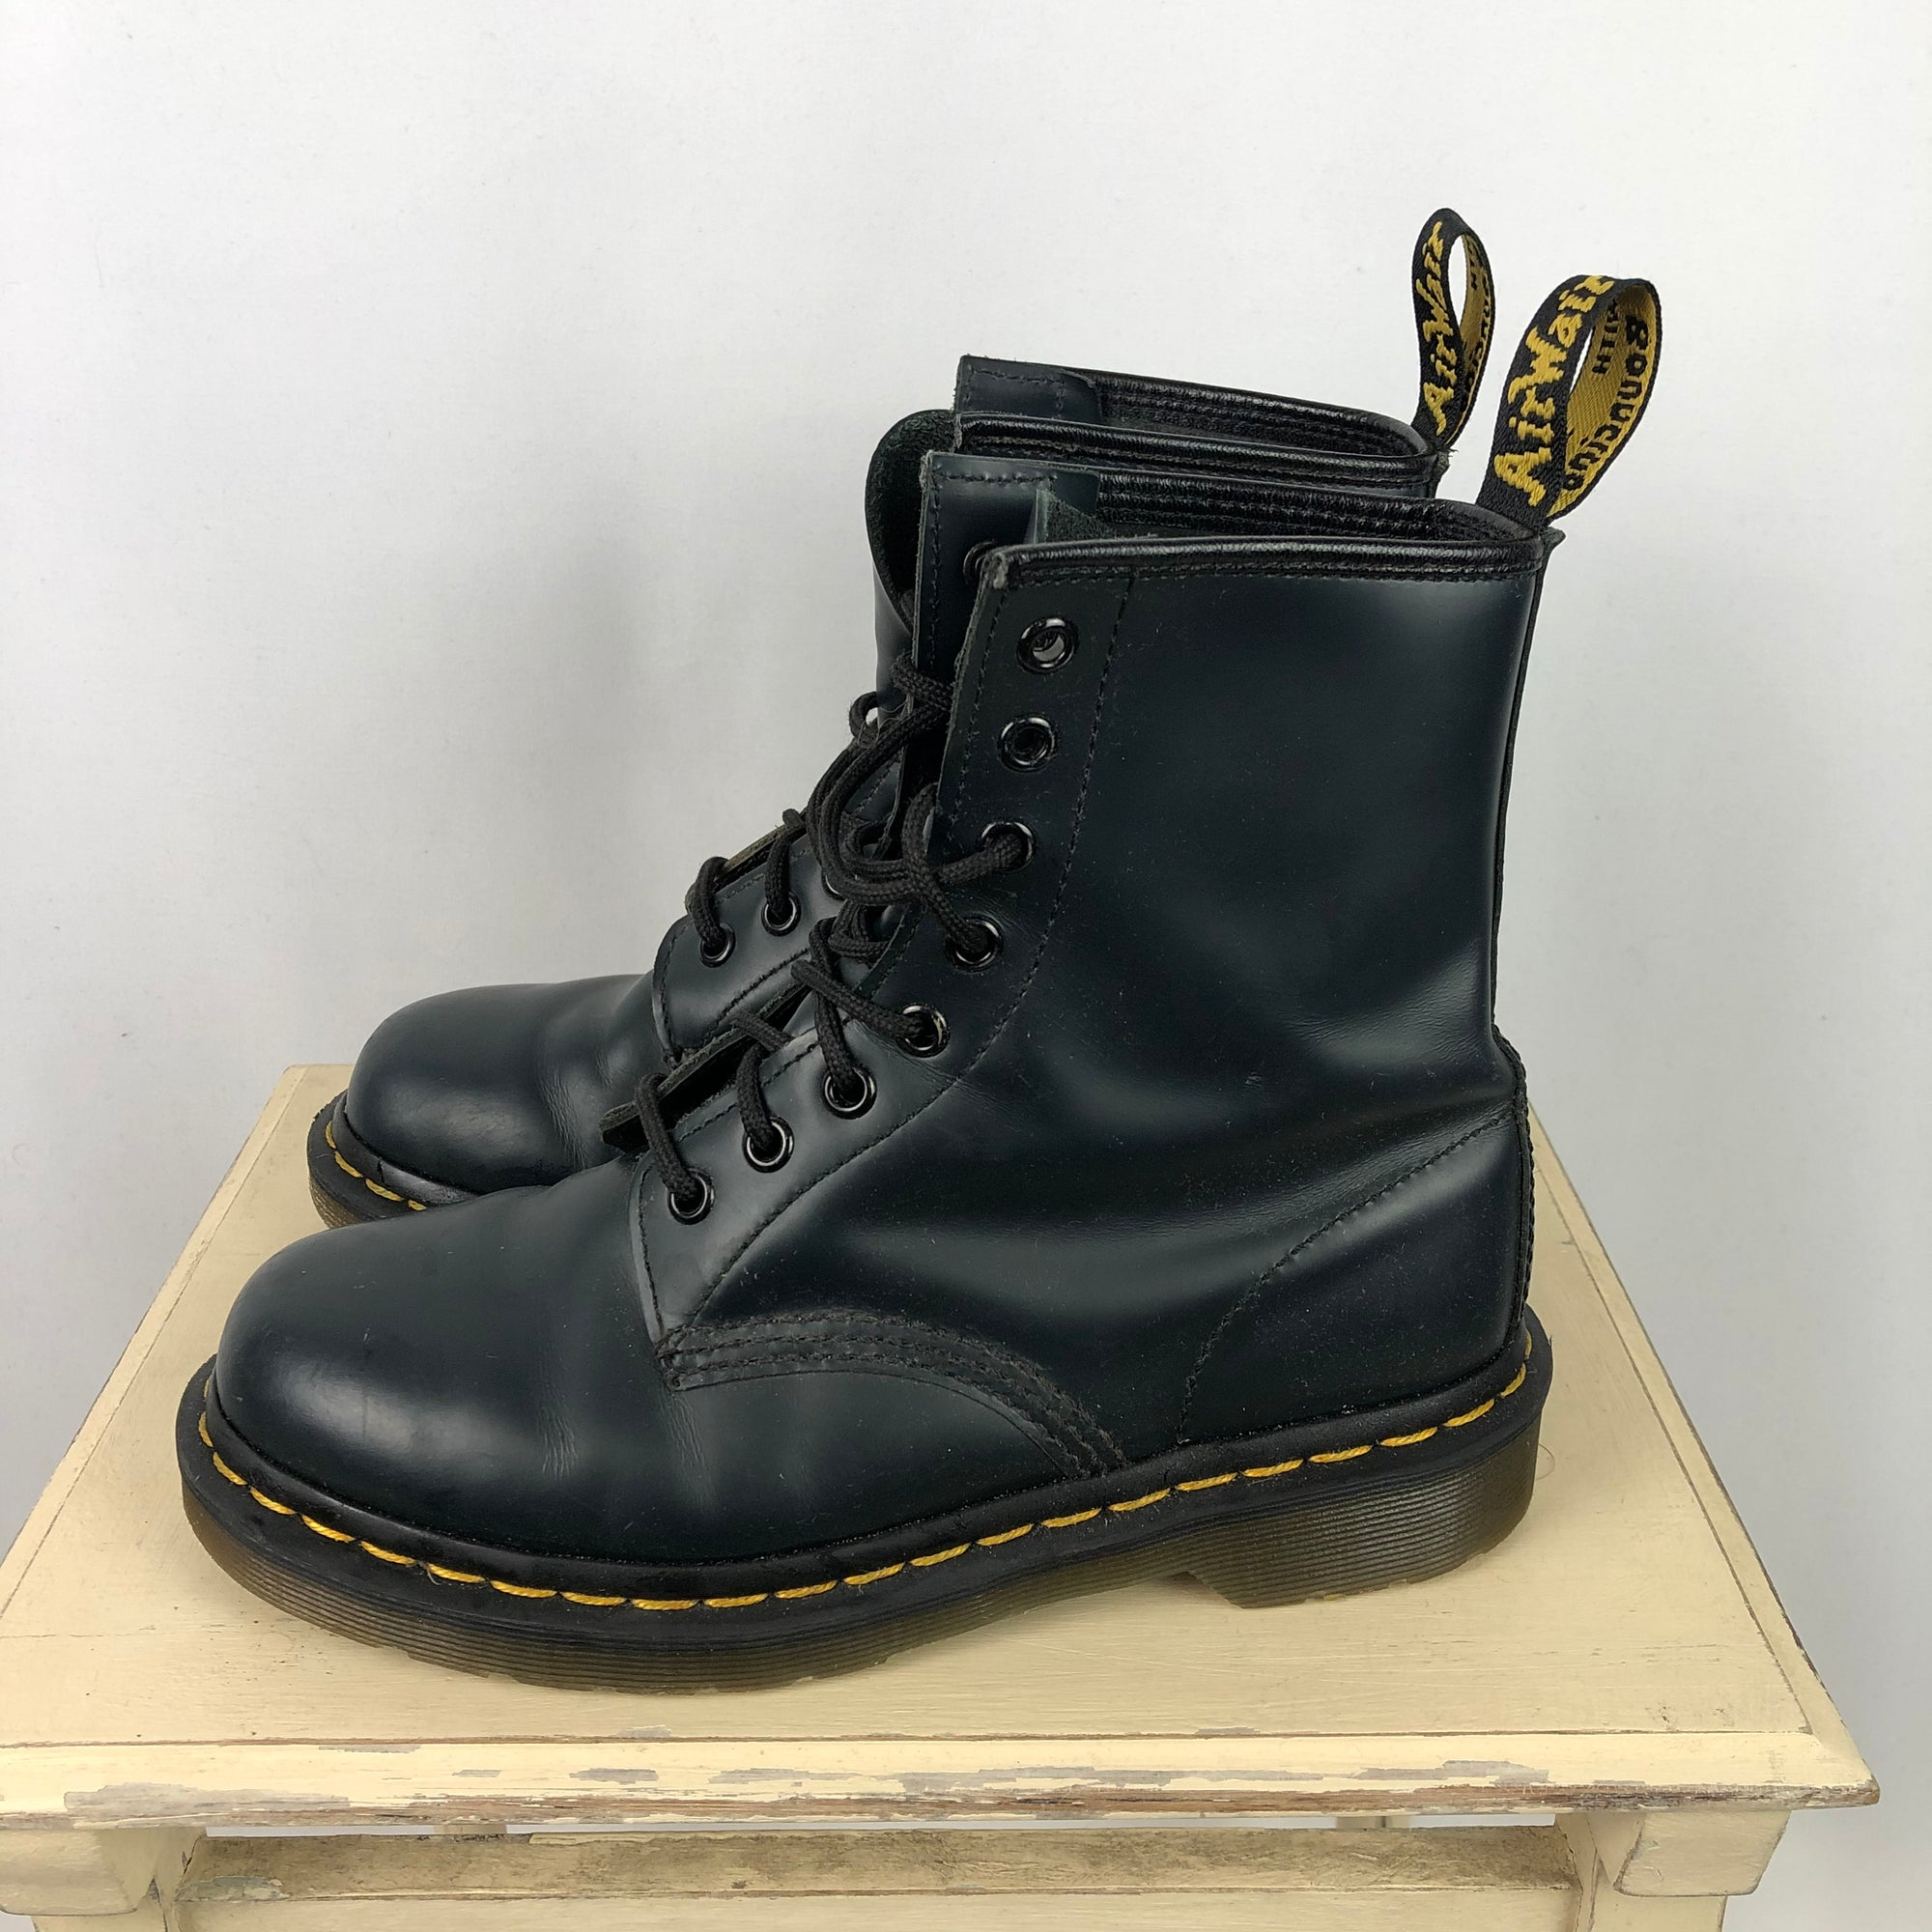 Dr Martens 1466 Leather Boots in Navy - UK4/EU37